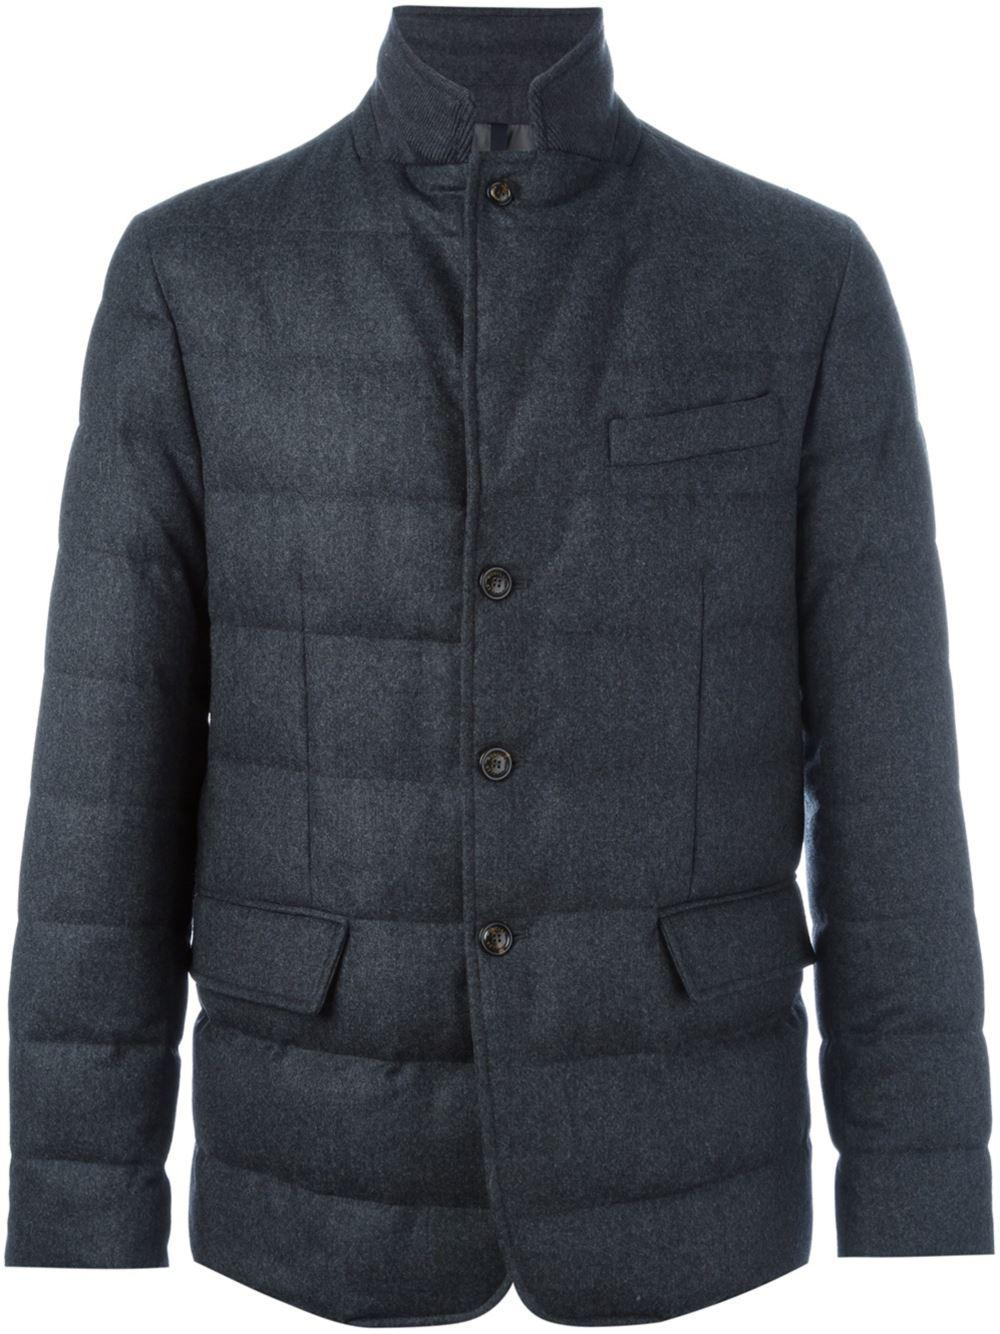 Moncler Wool 'rodin' Jacket in Grey (Grey) for Men